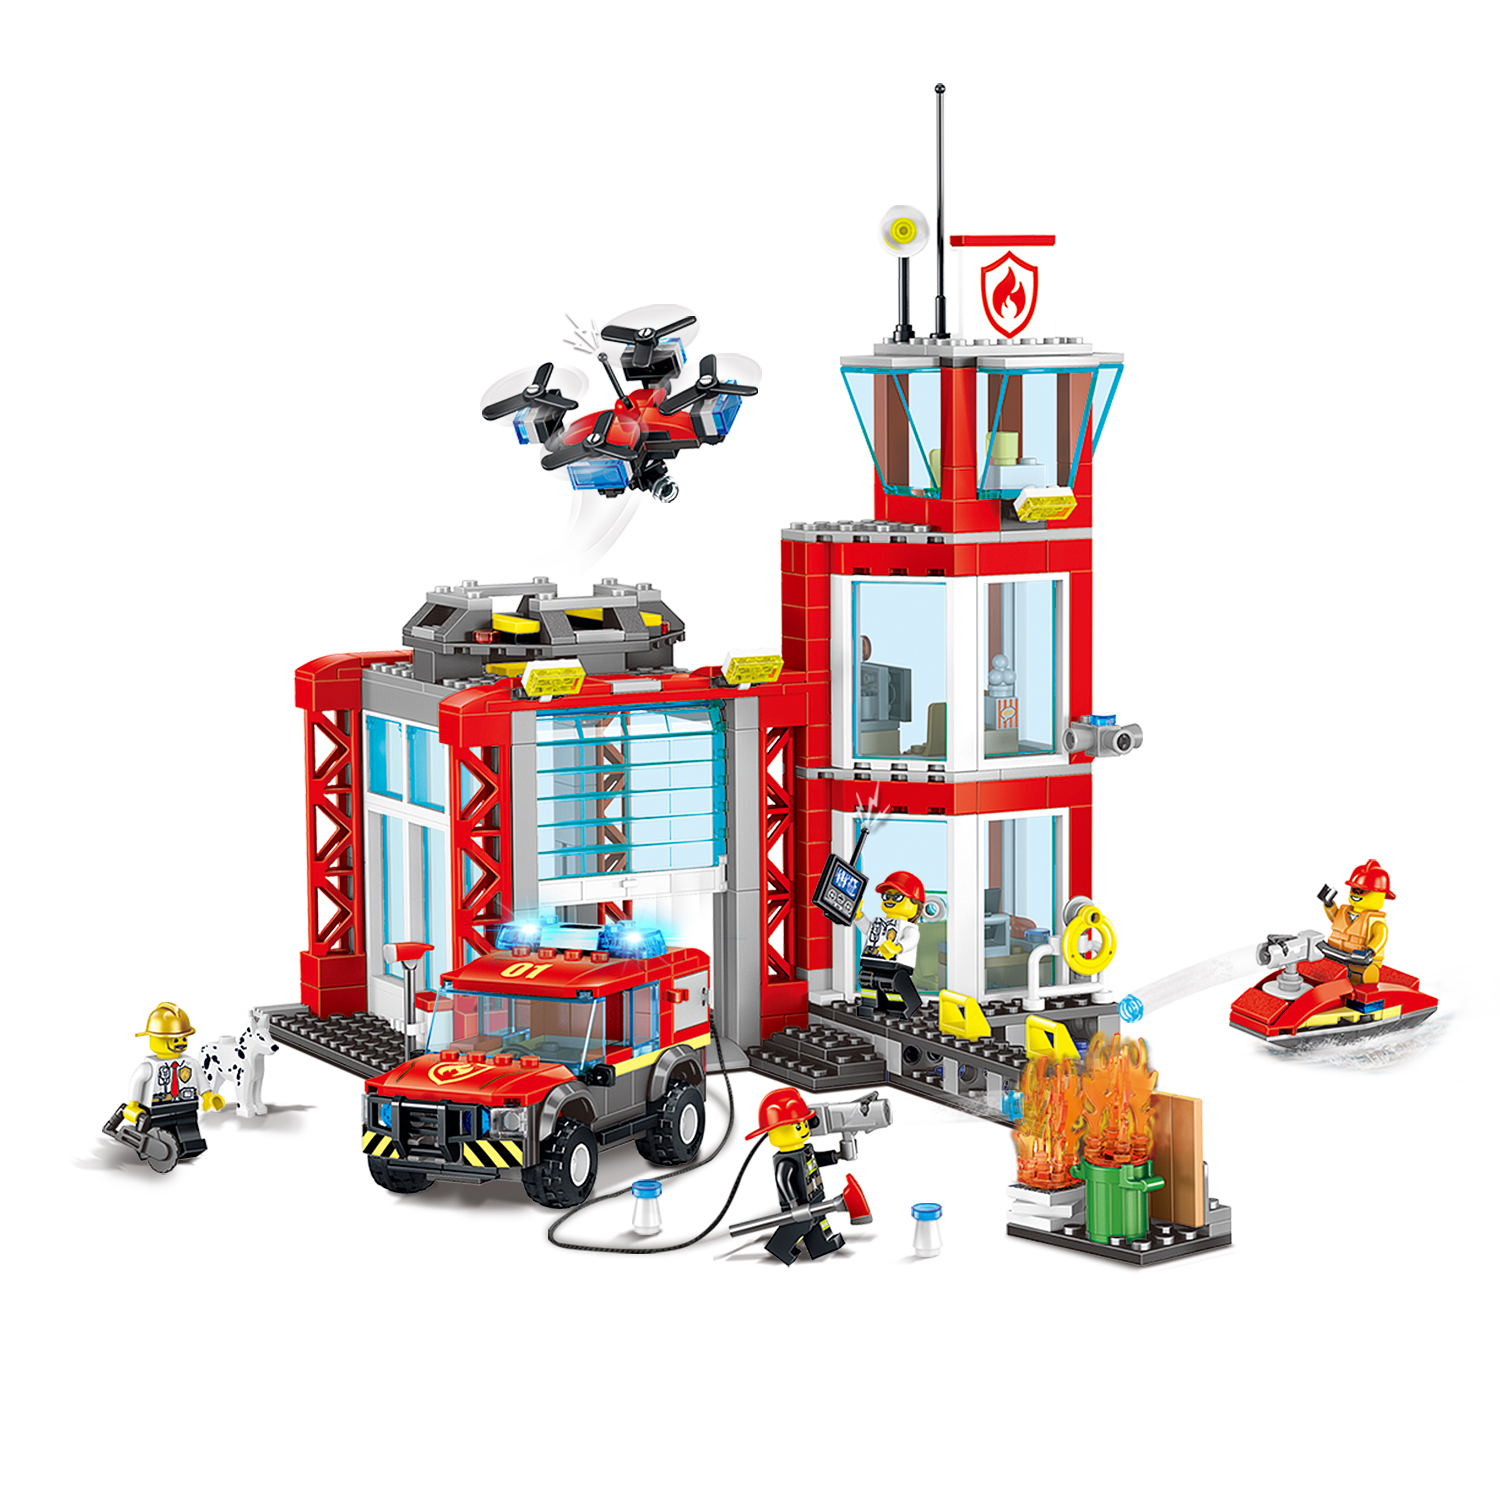 In Stock Legoinglys City Fire Department Building Blocks Bricks Legoinglys Fire Station Classic Model Toys For Child  XMAS GIFT